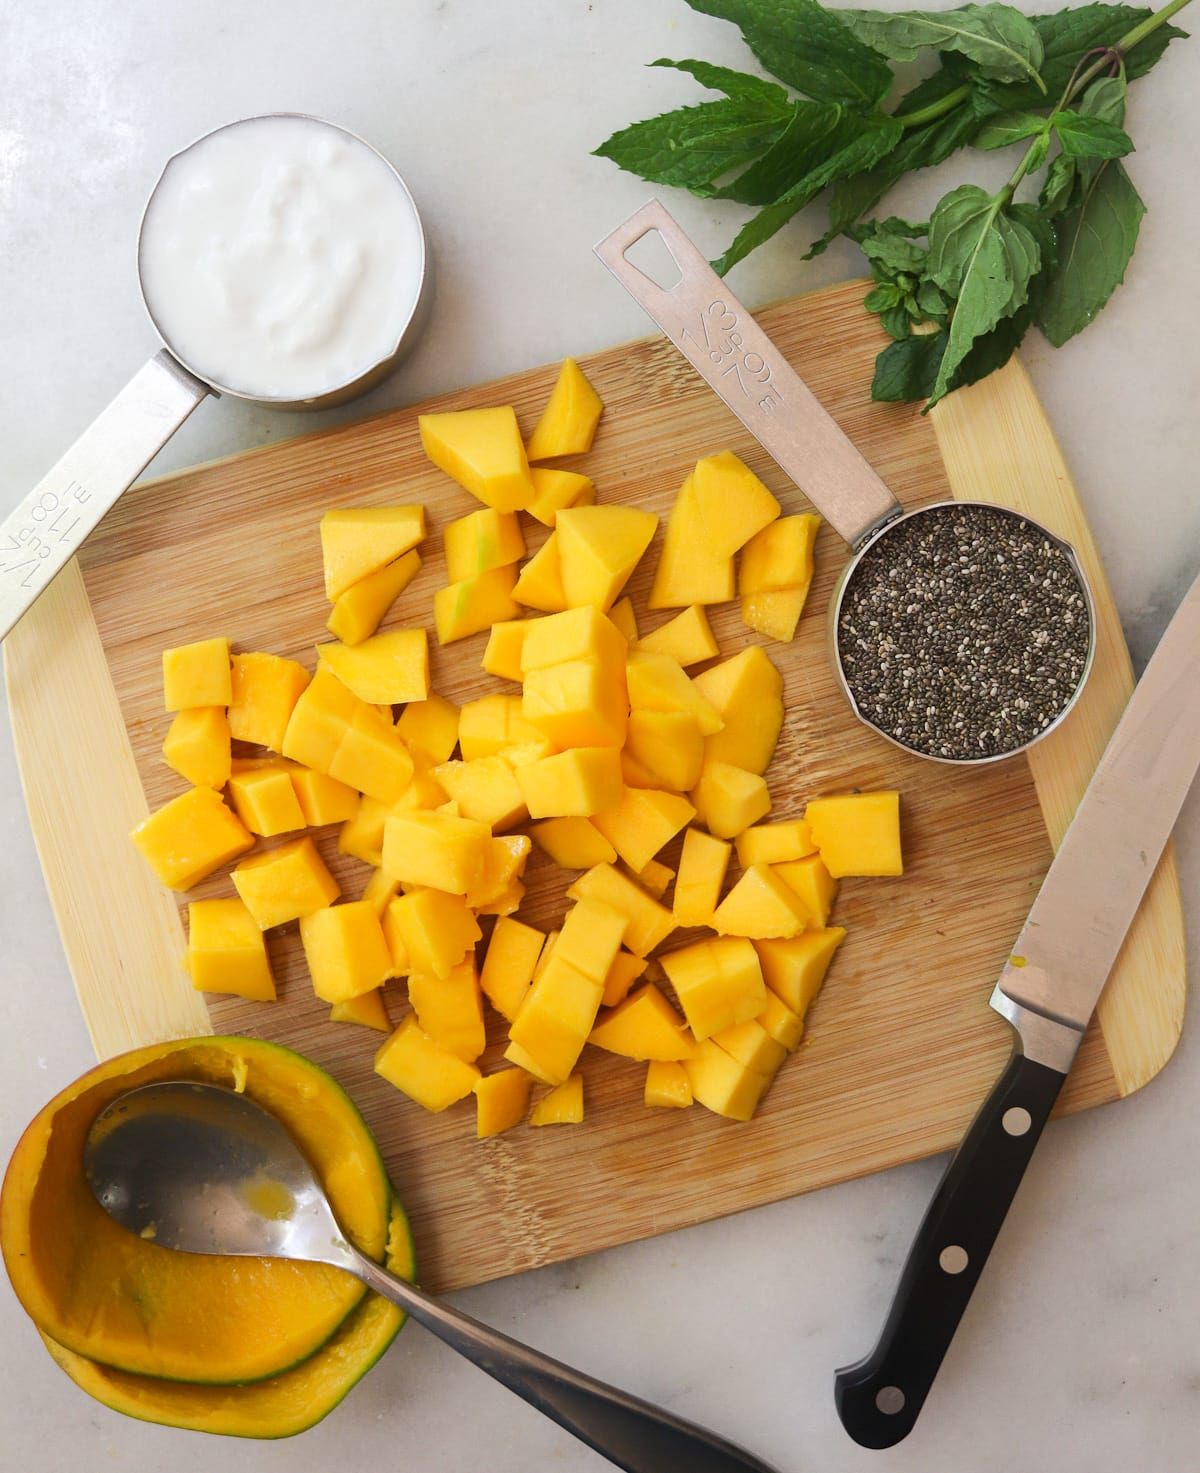 Top down of a wooden cutting board topped with diced mango and two small measuring cups filled with coconut milk and chia seeds.